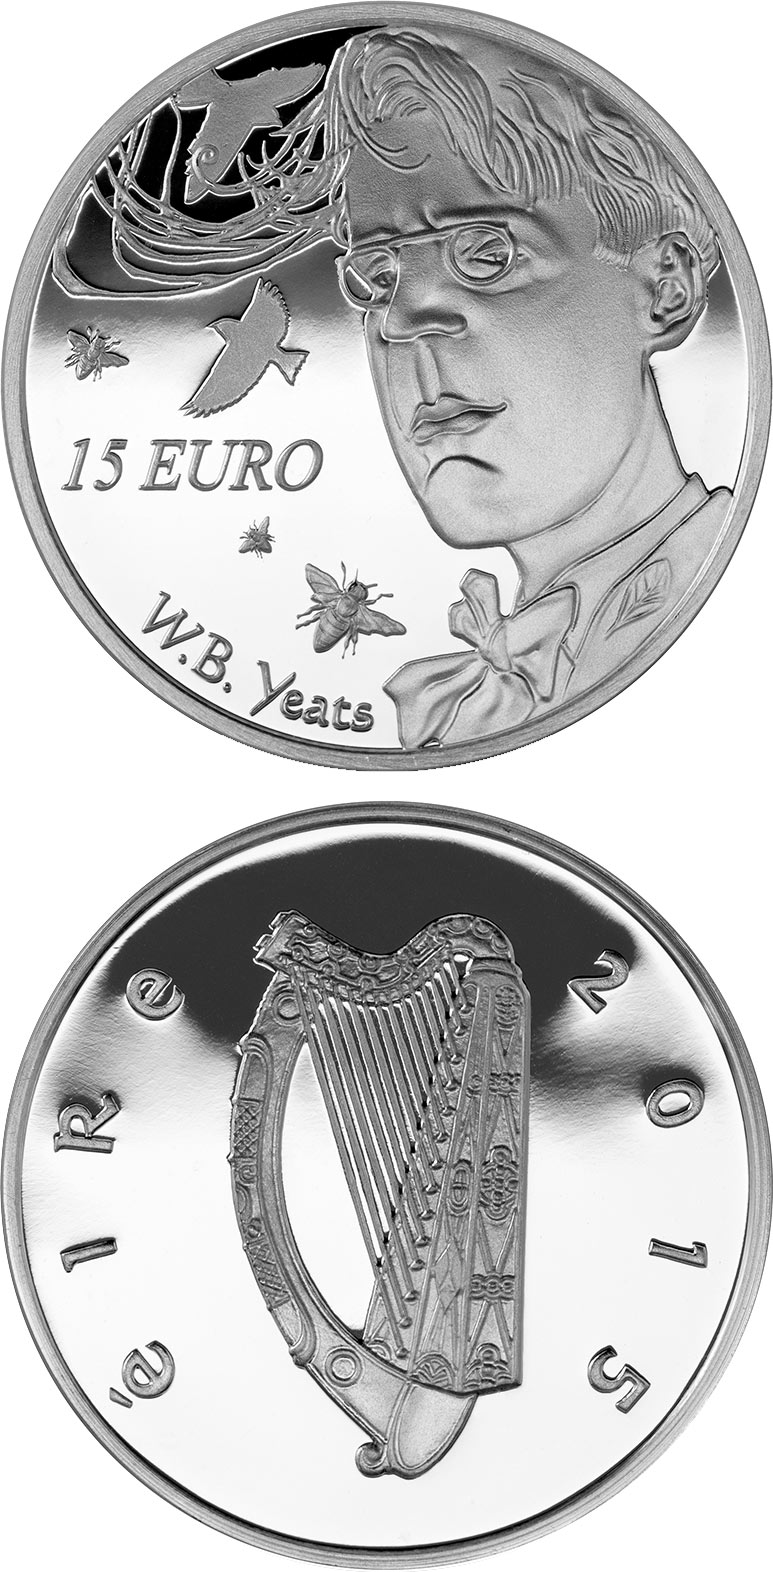 15 euro 150th Anniversary of the Birth of W.B. Yeats - 2015 - Series: Irish others commmorative coins - Ireland